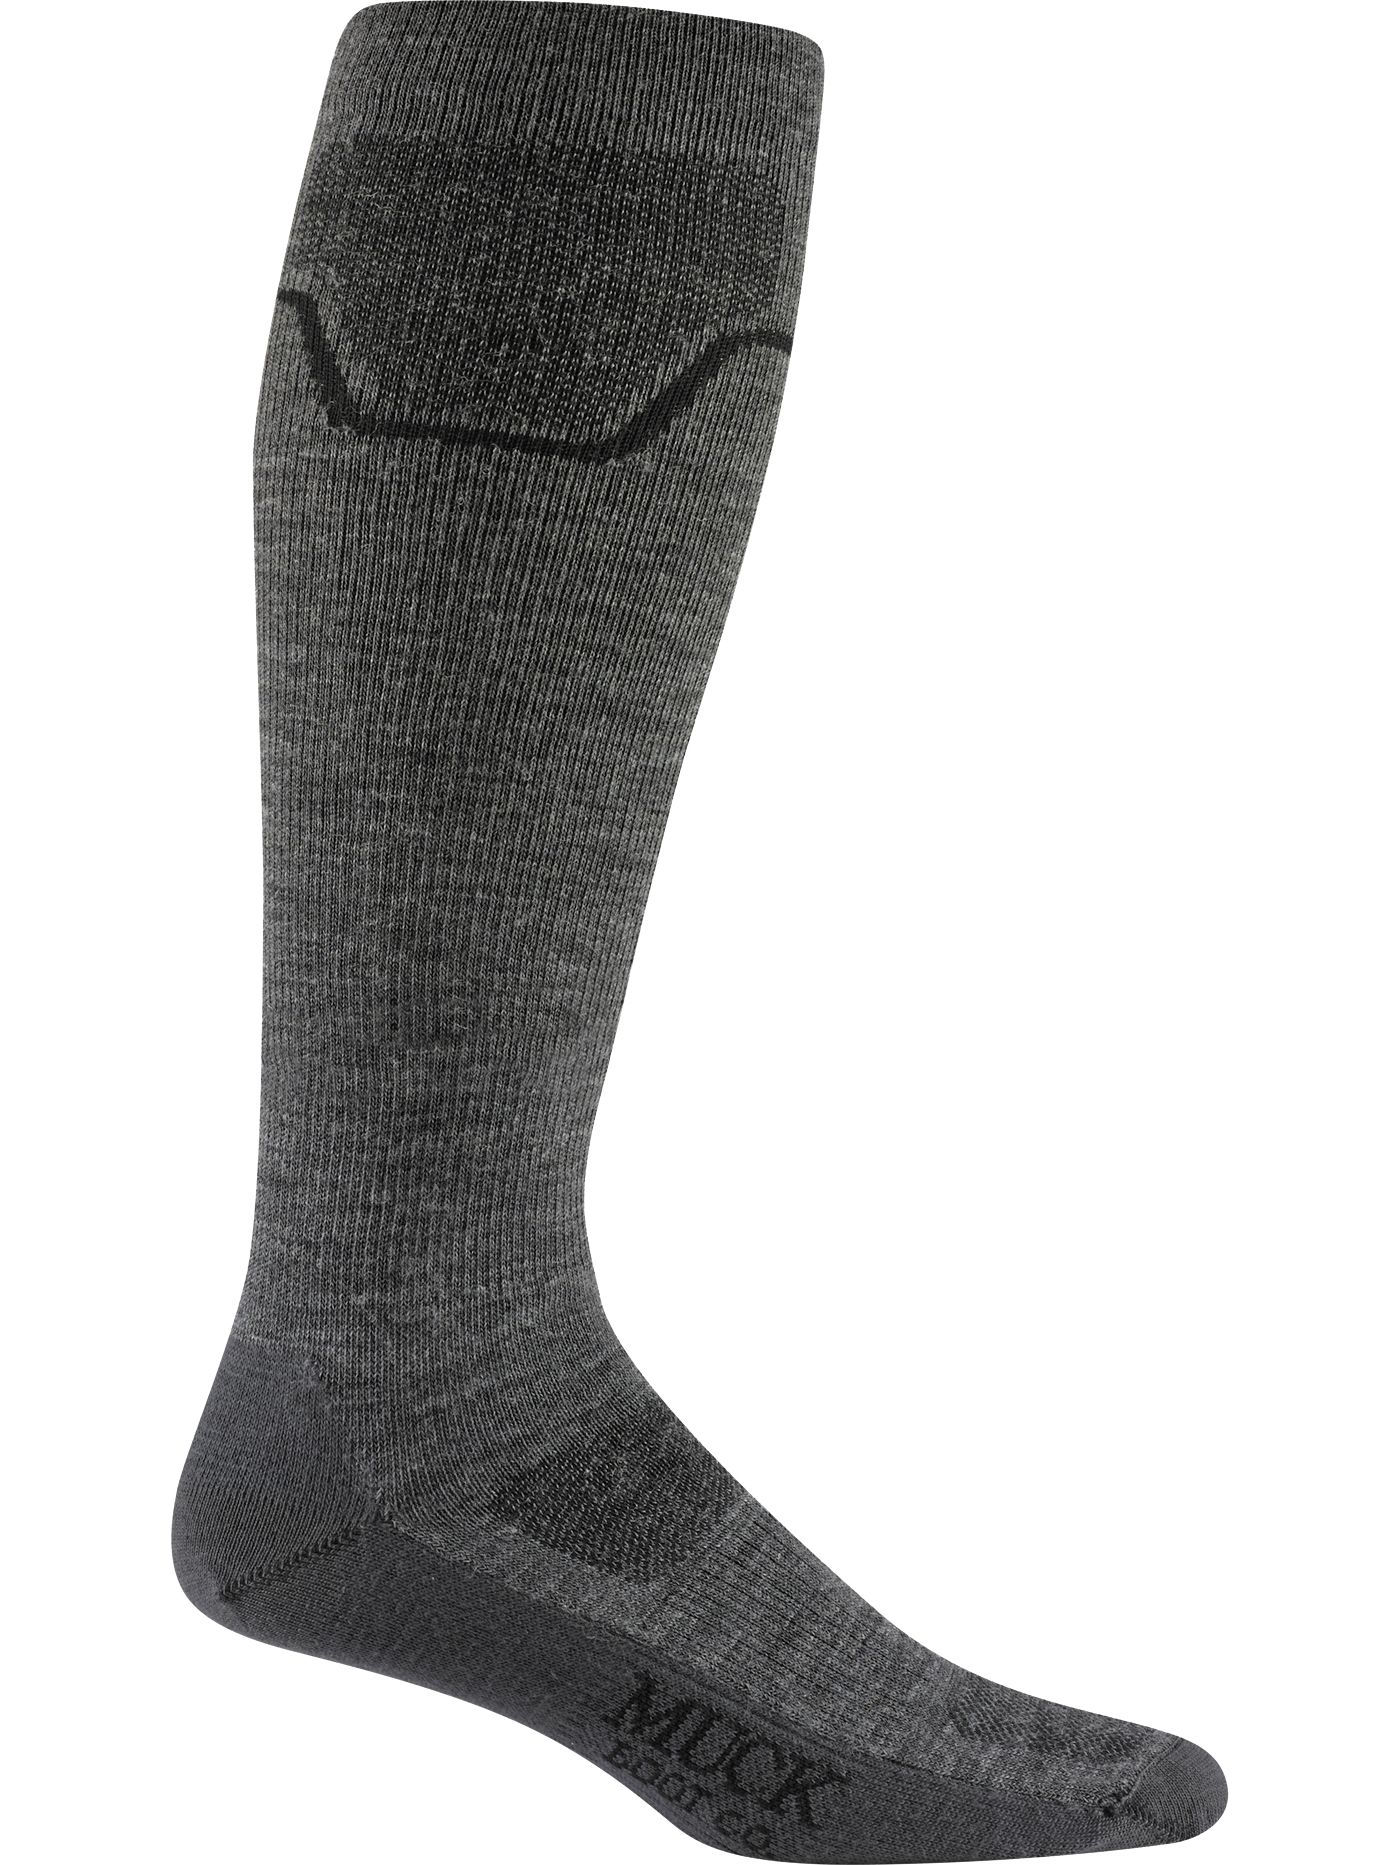 Muck's Men's Anchorage Over-the-Calf Socks